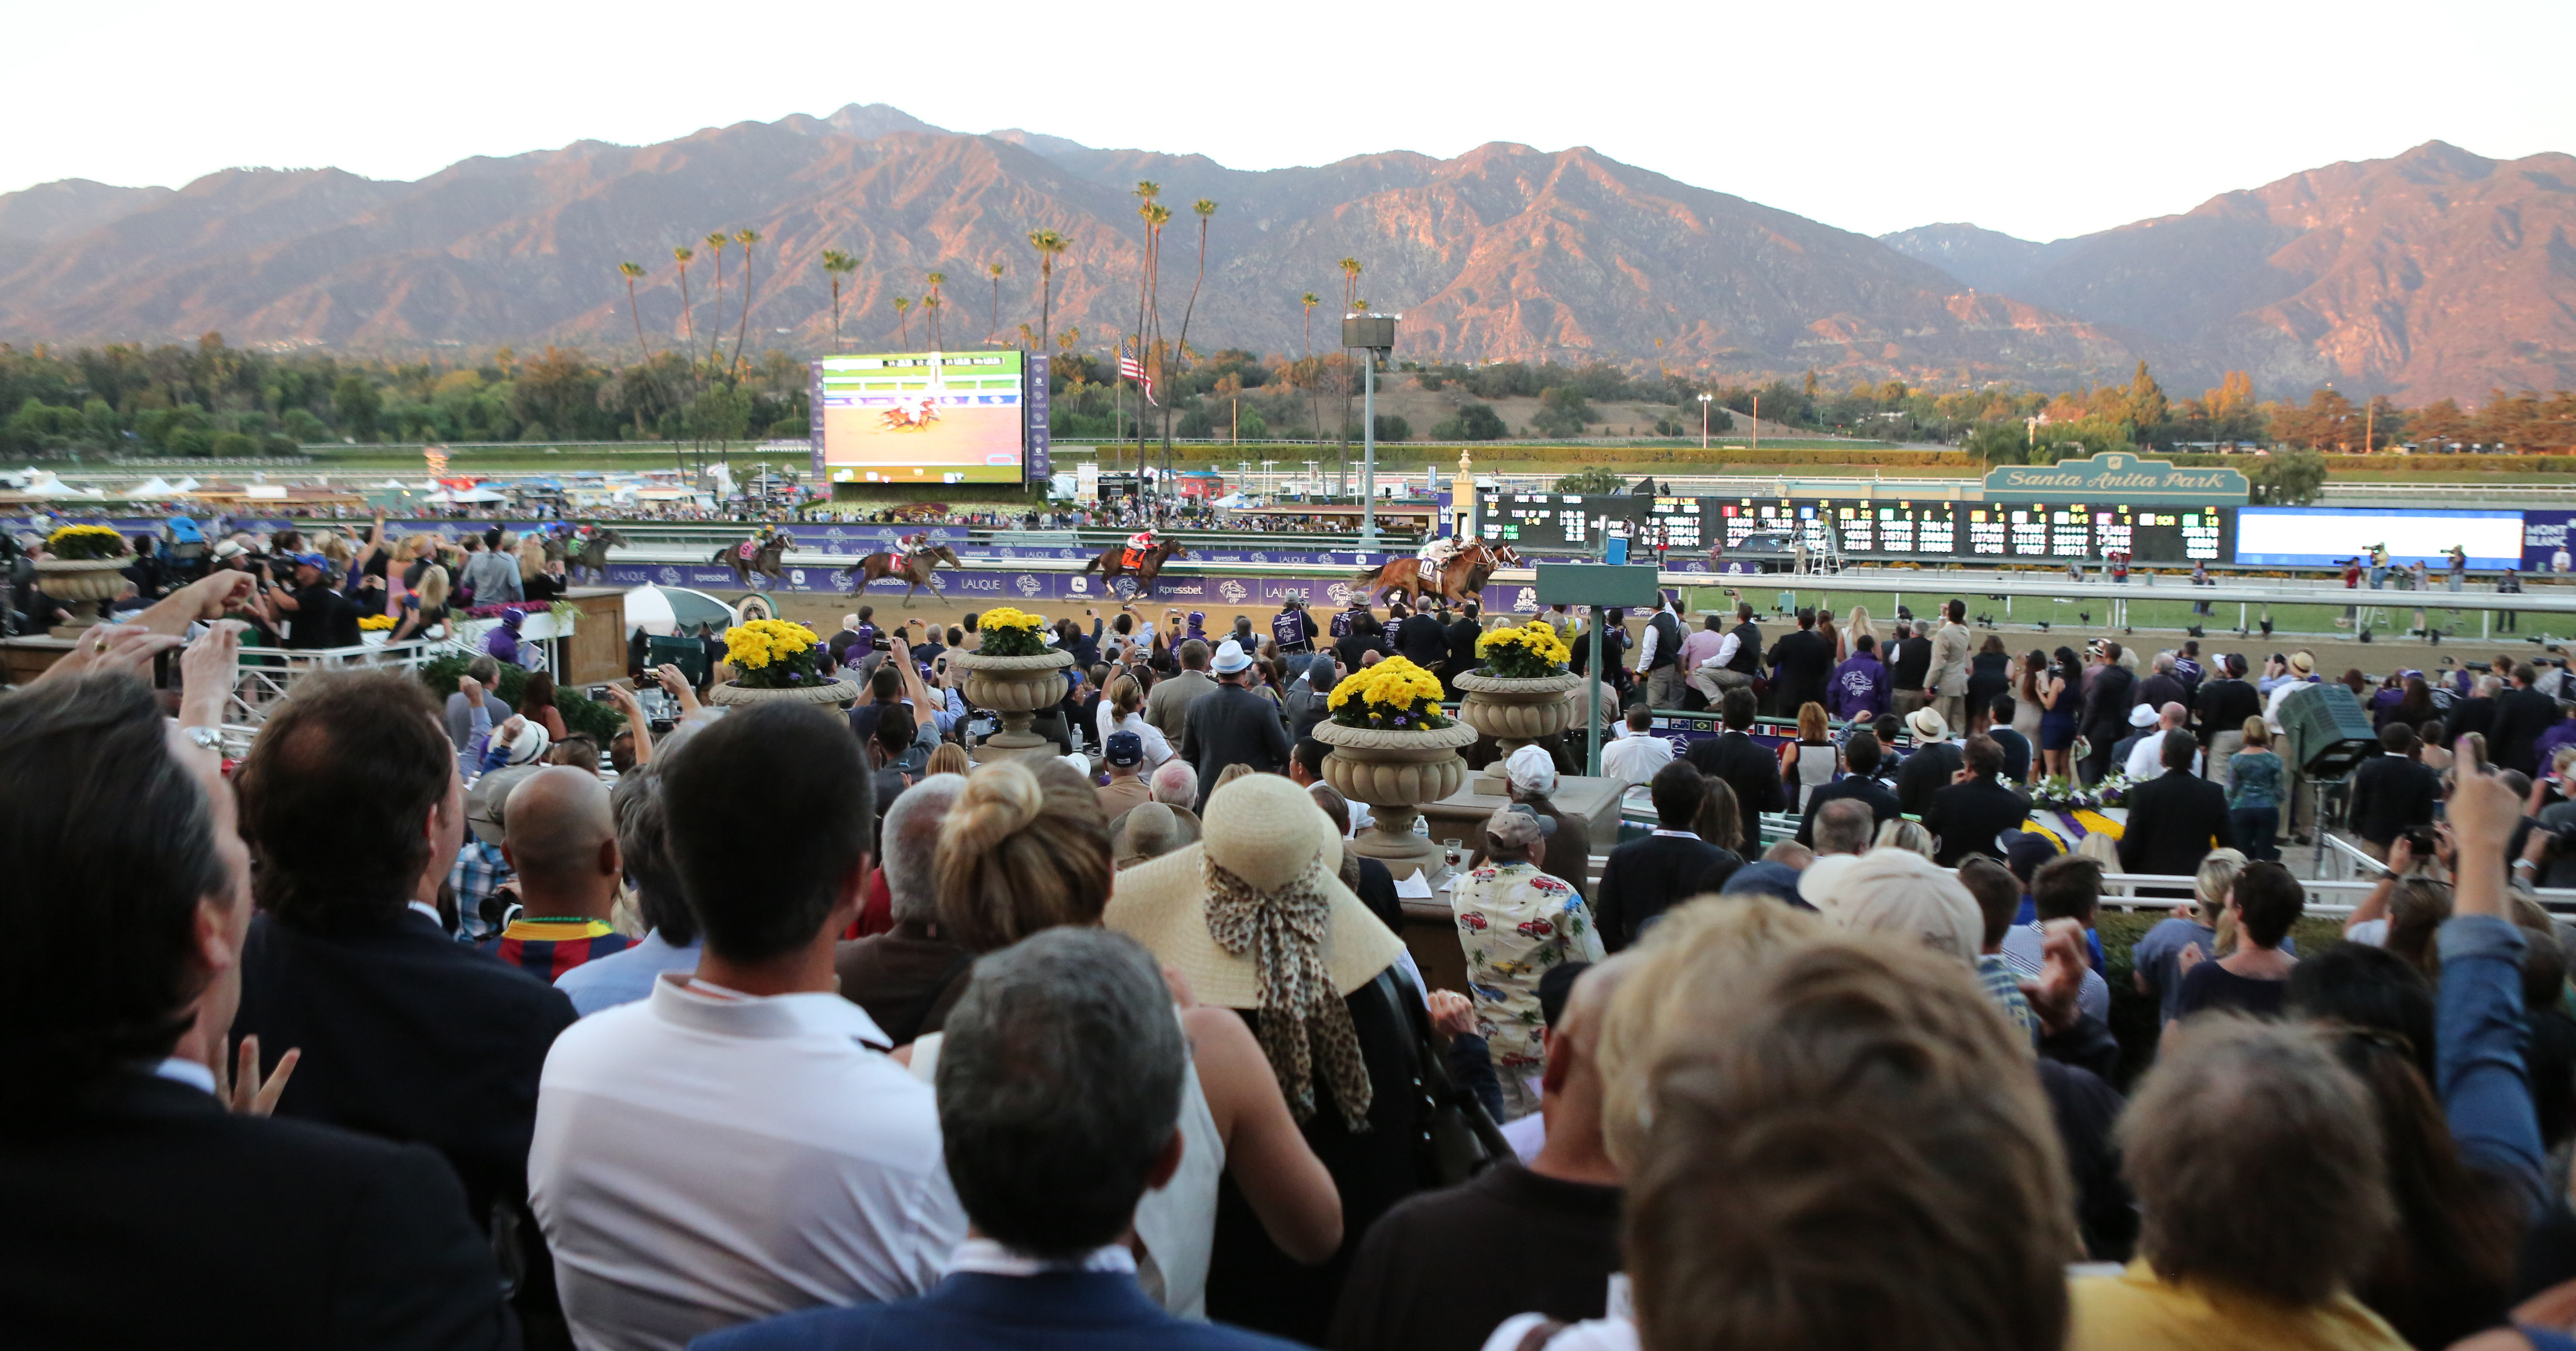 Go Metro Gold Line To The Breeders Cup At Santa Anita Park